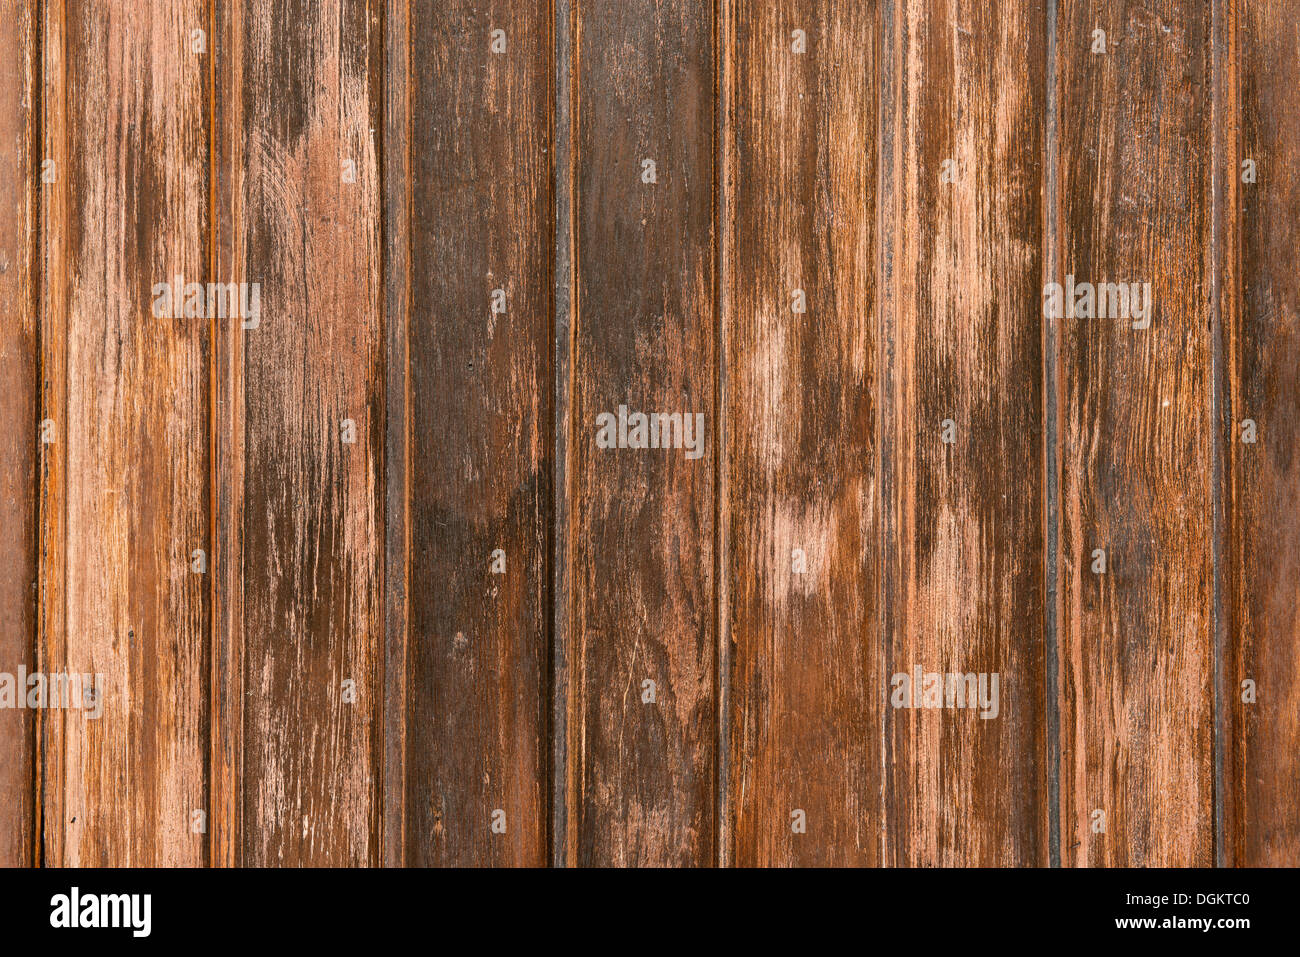 Weathered wooden wall - Stock Image